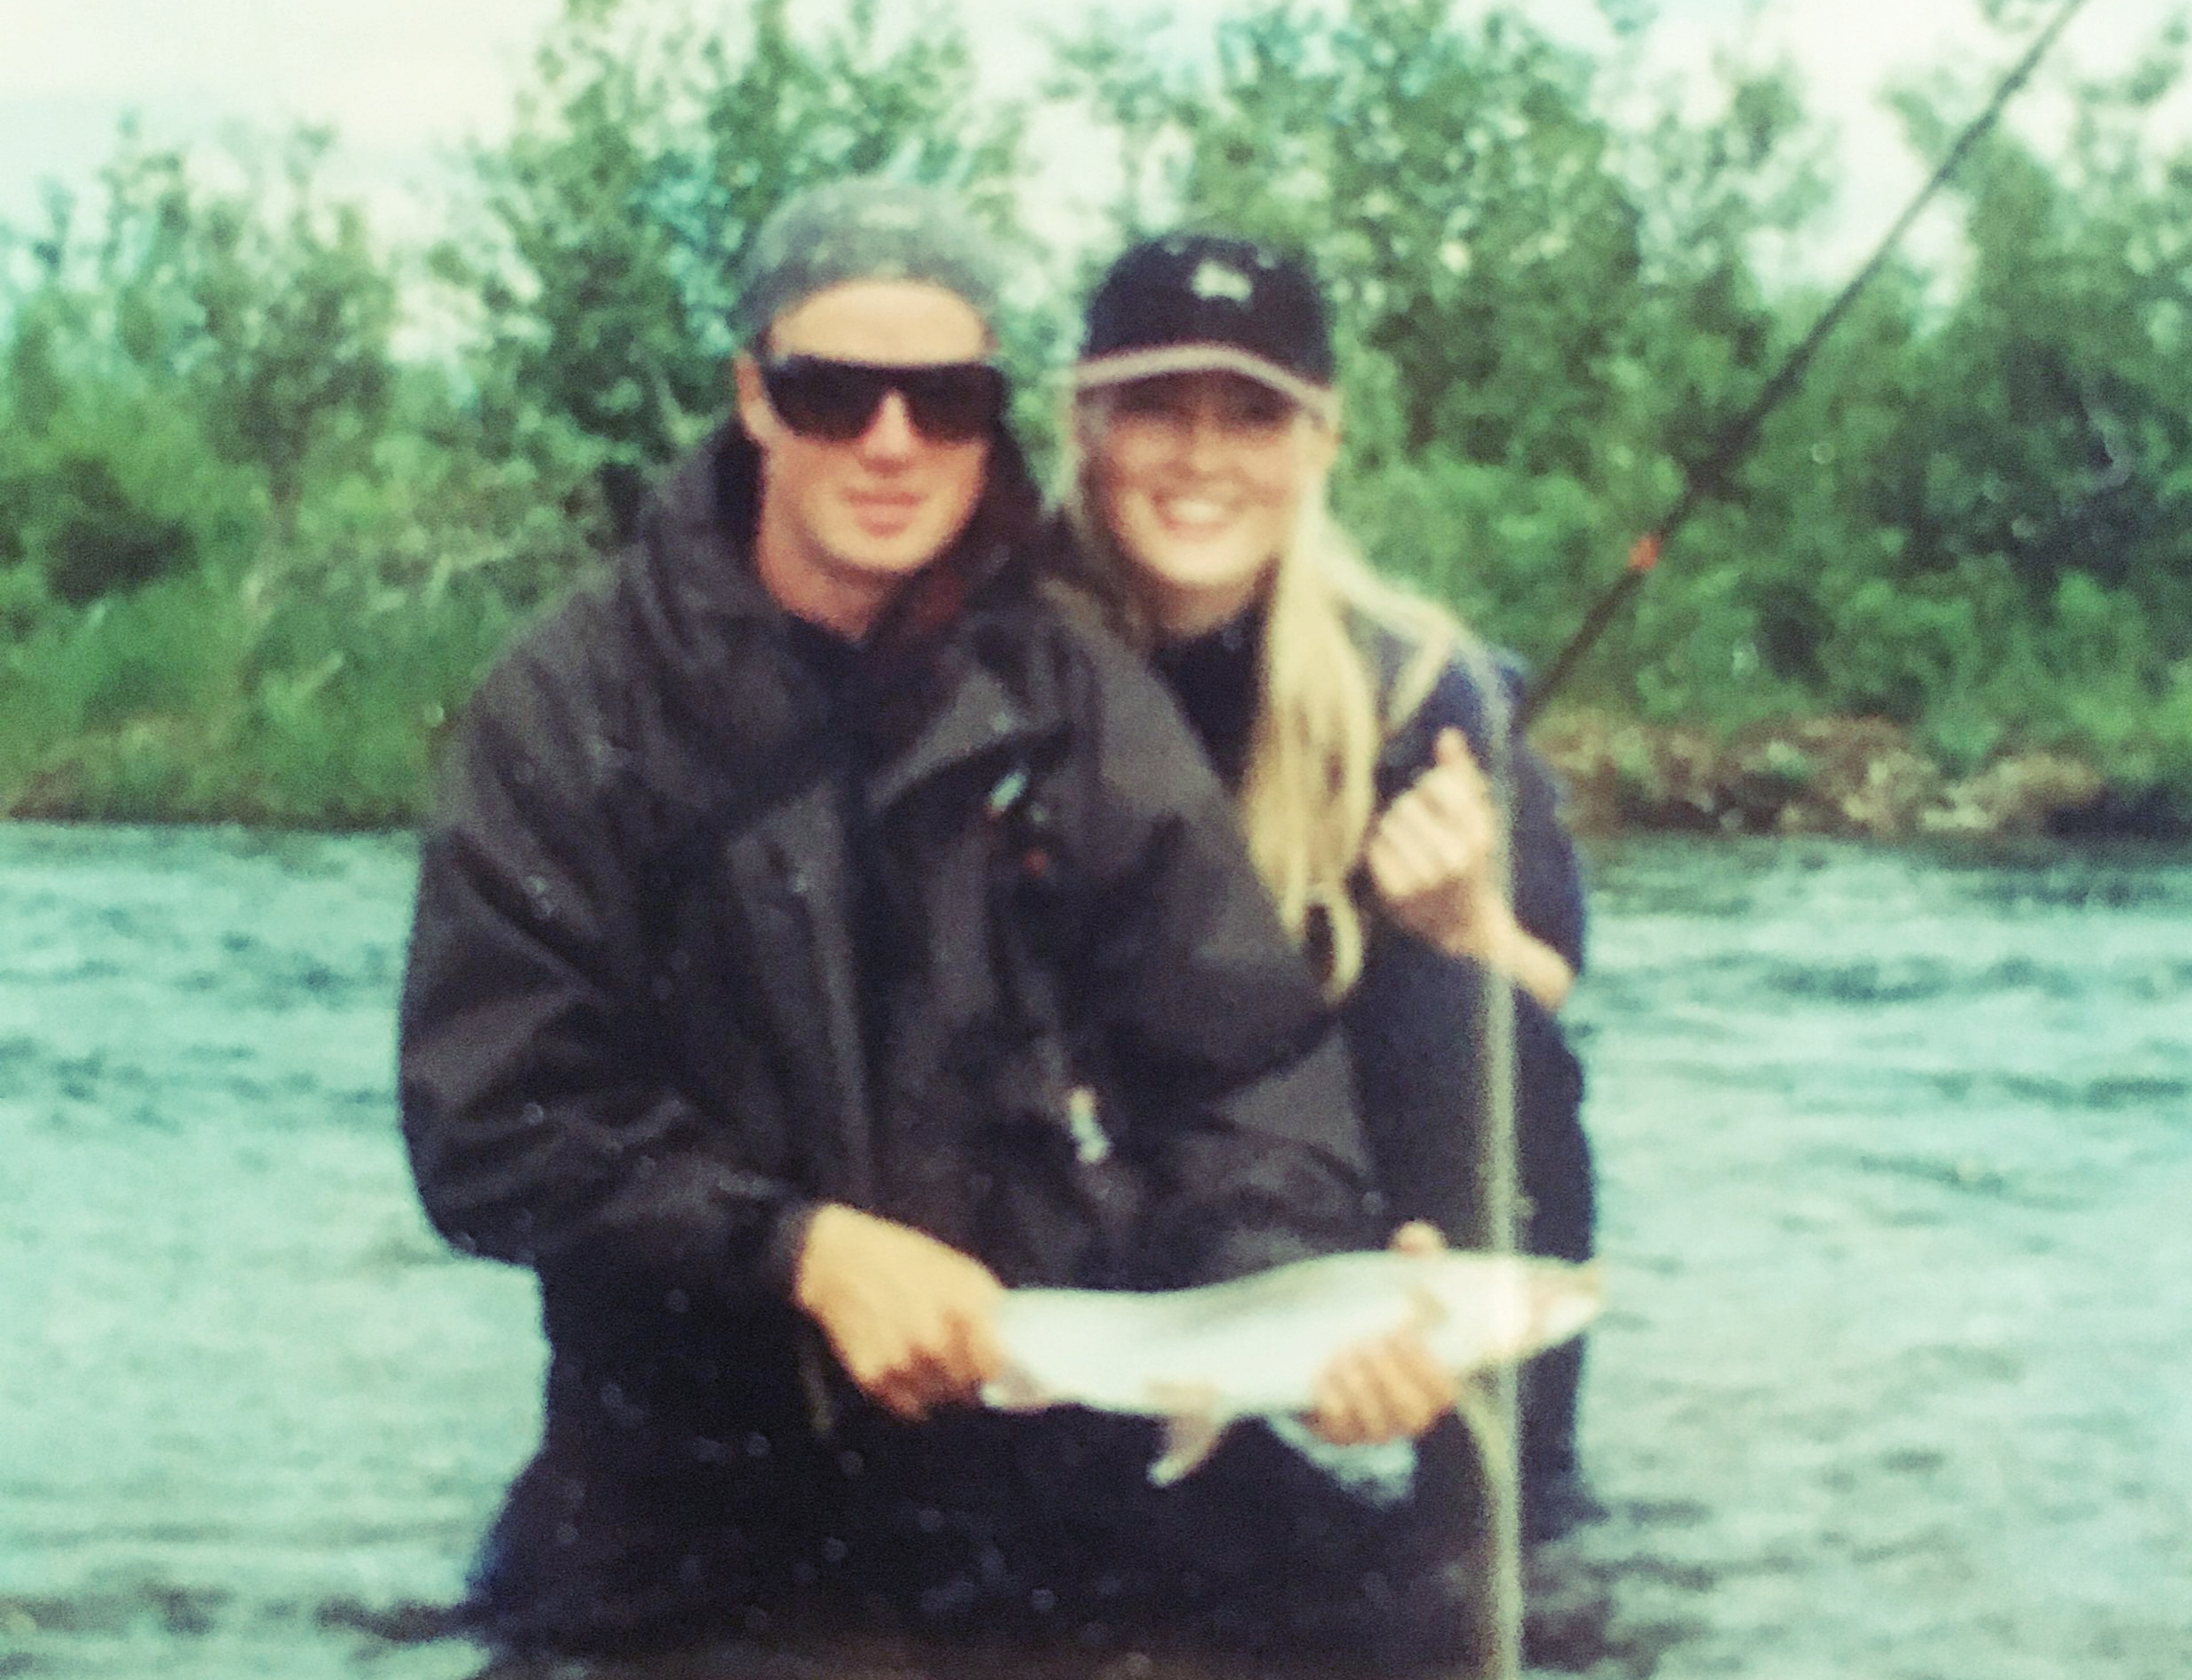 Our first date in Alaska 1995.